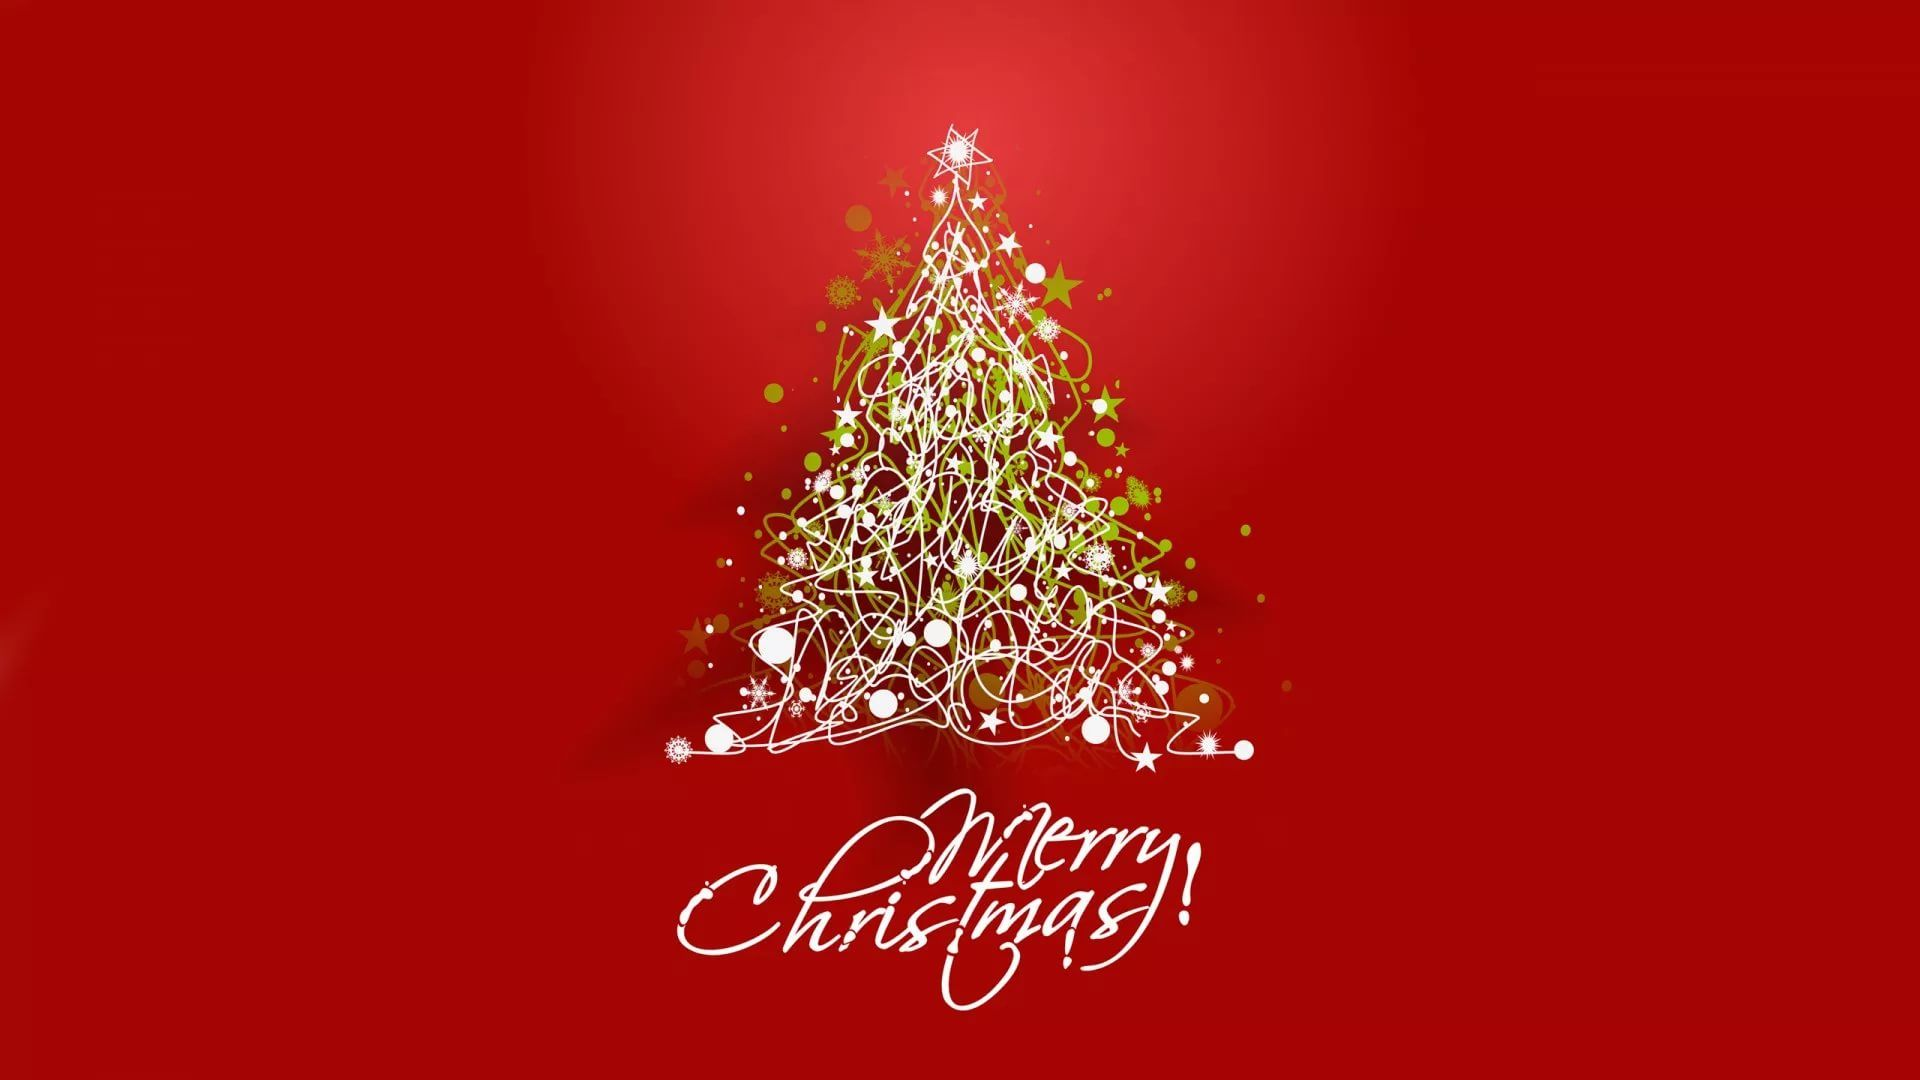 Merry Christmas Cool Wallpaper